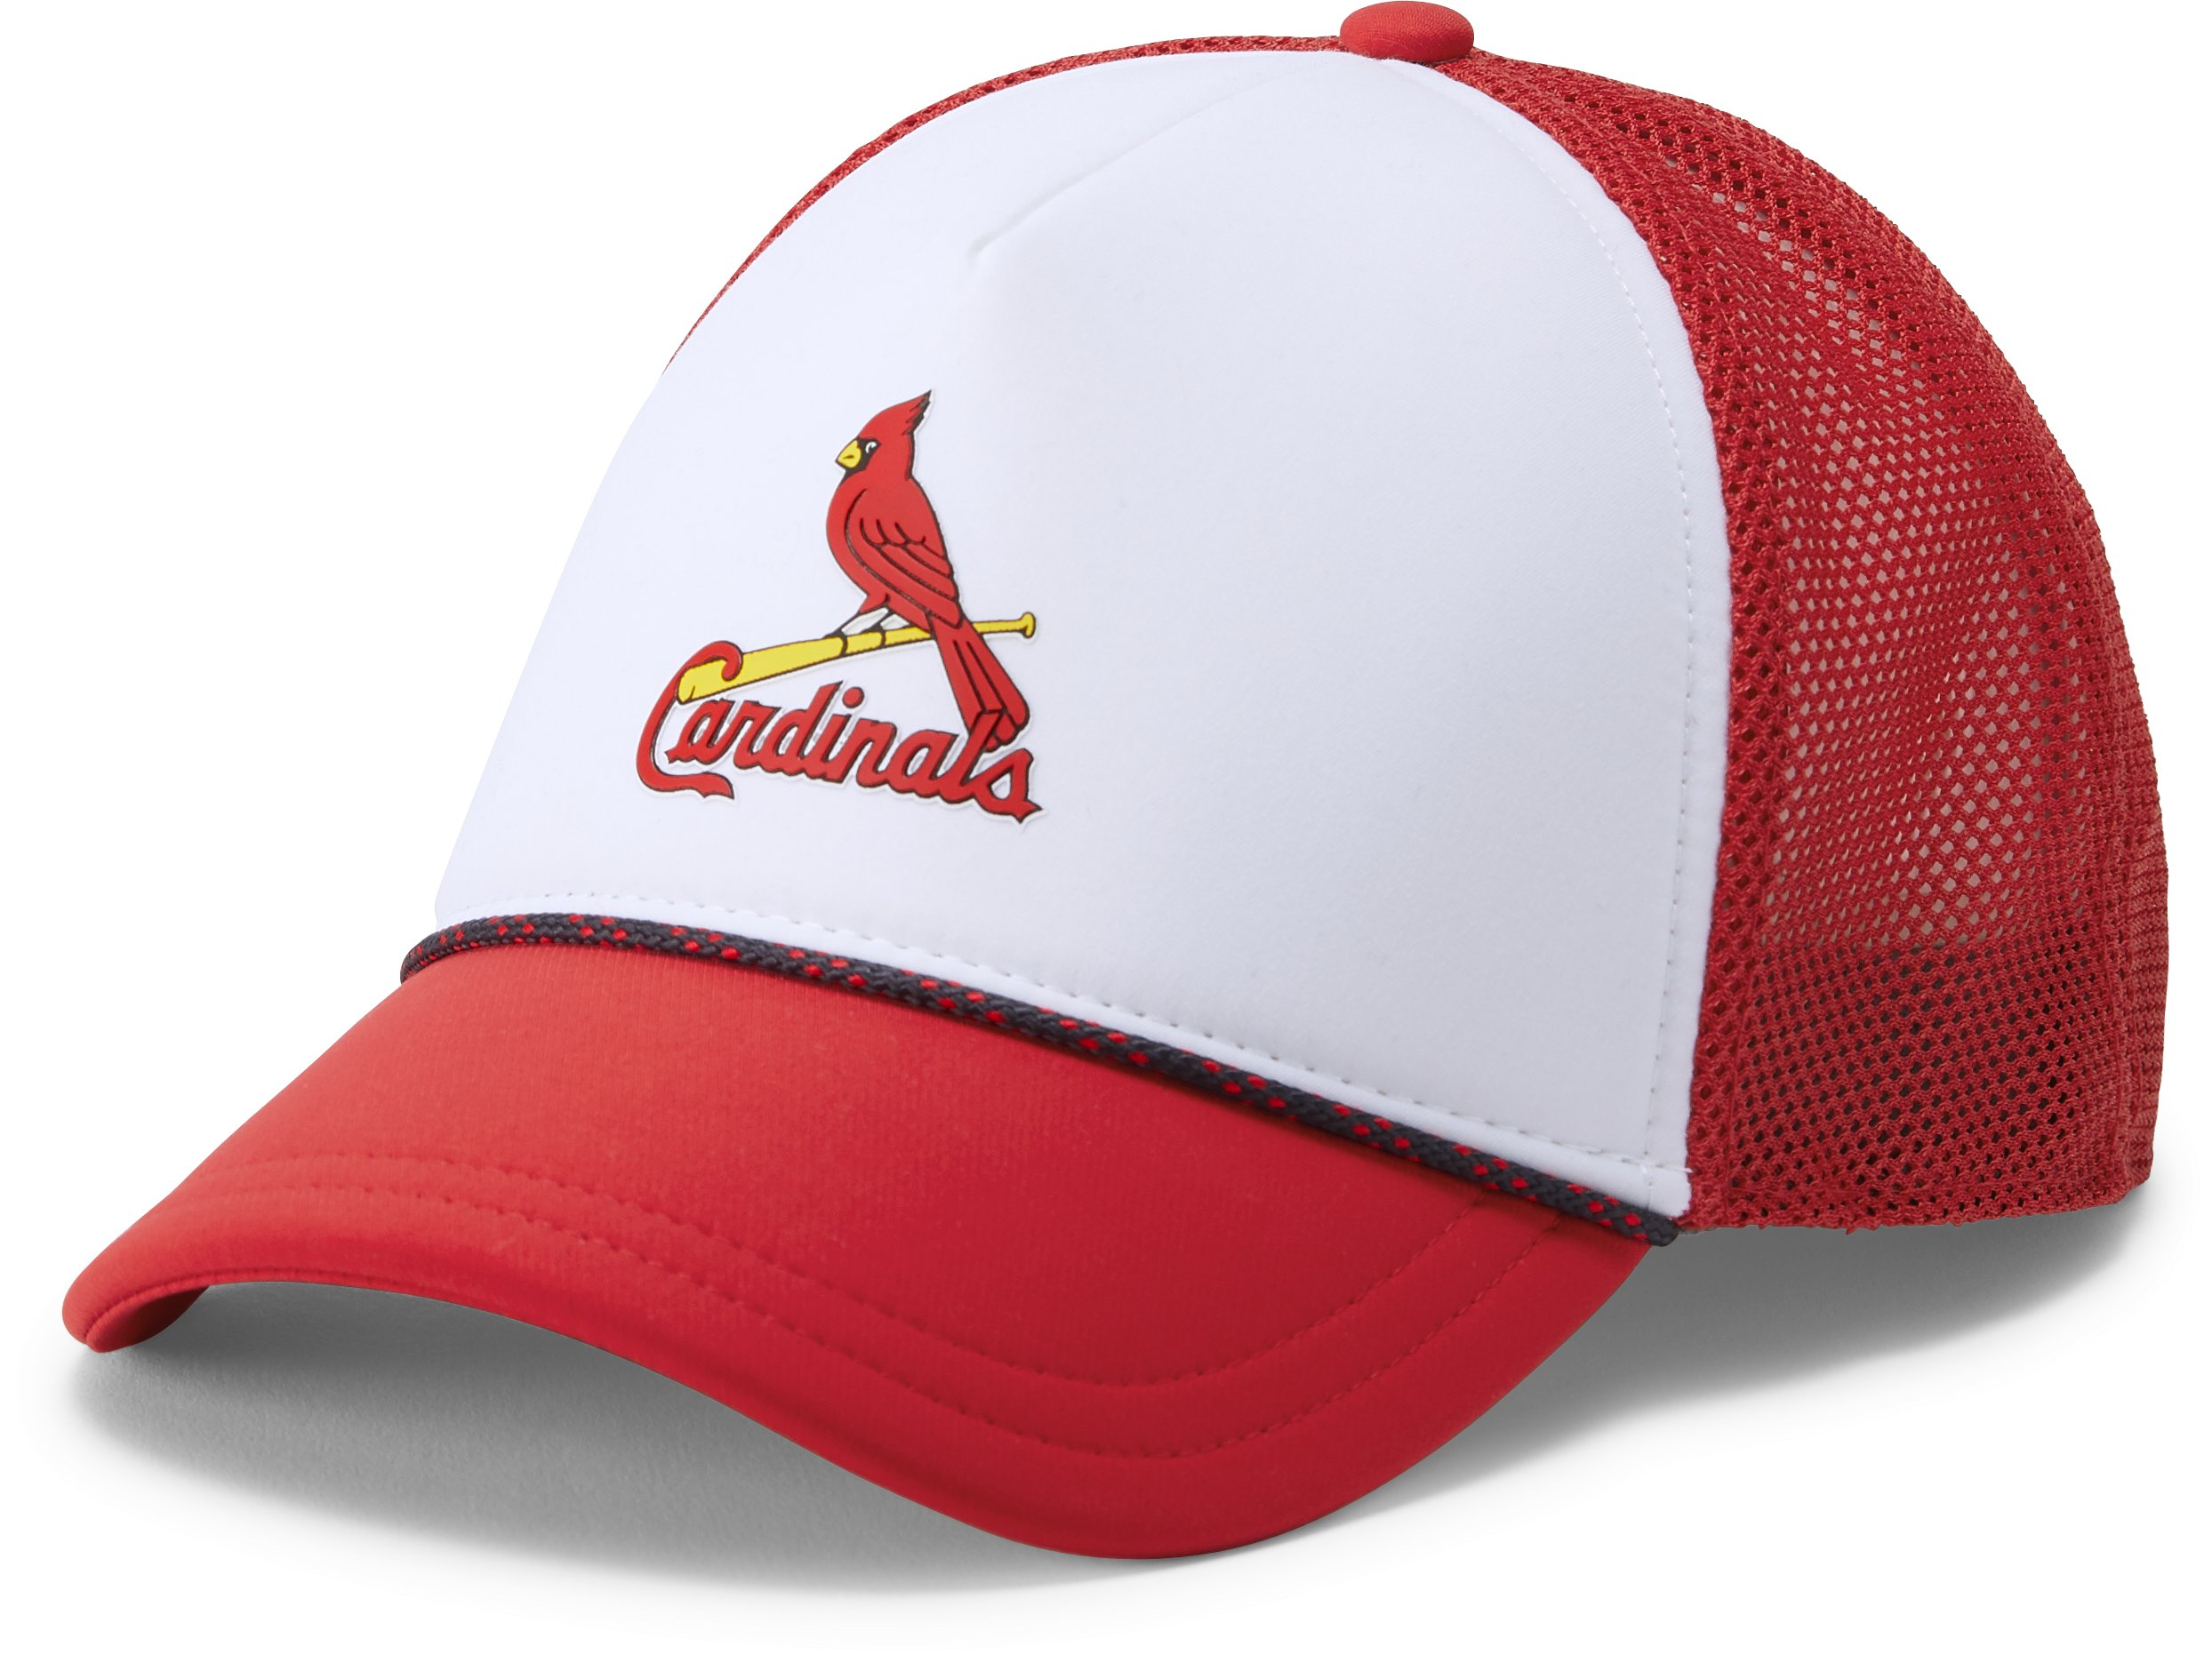 Women's MLB Foam Trucker Cap, White,